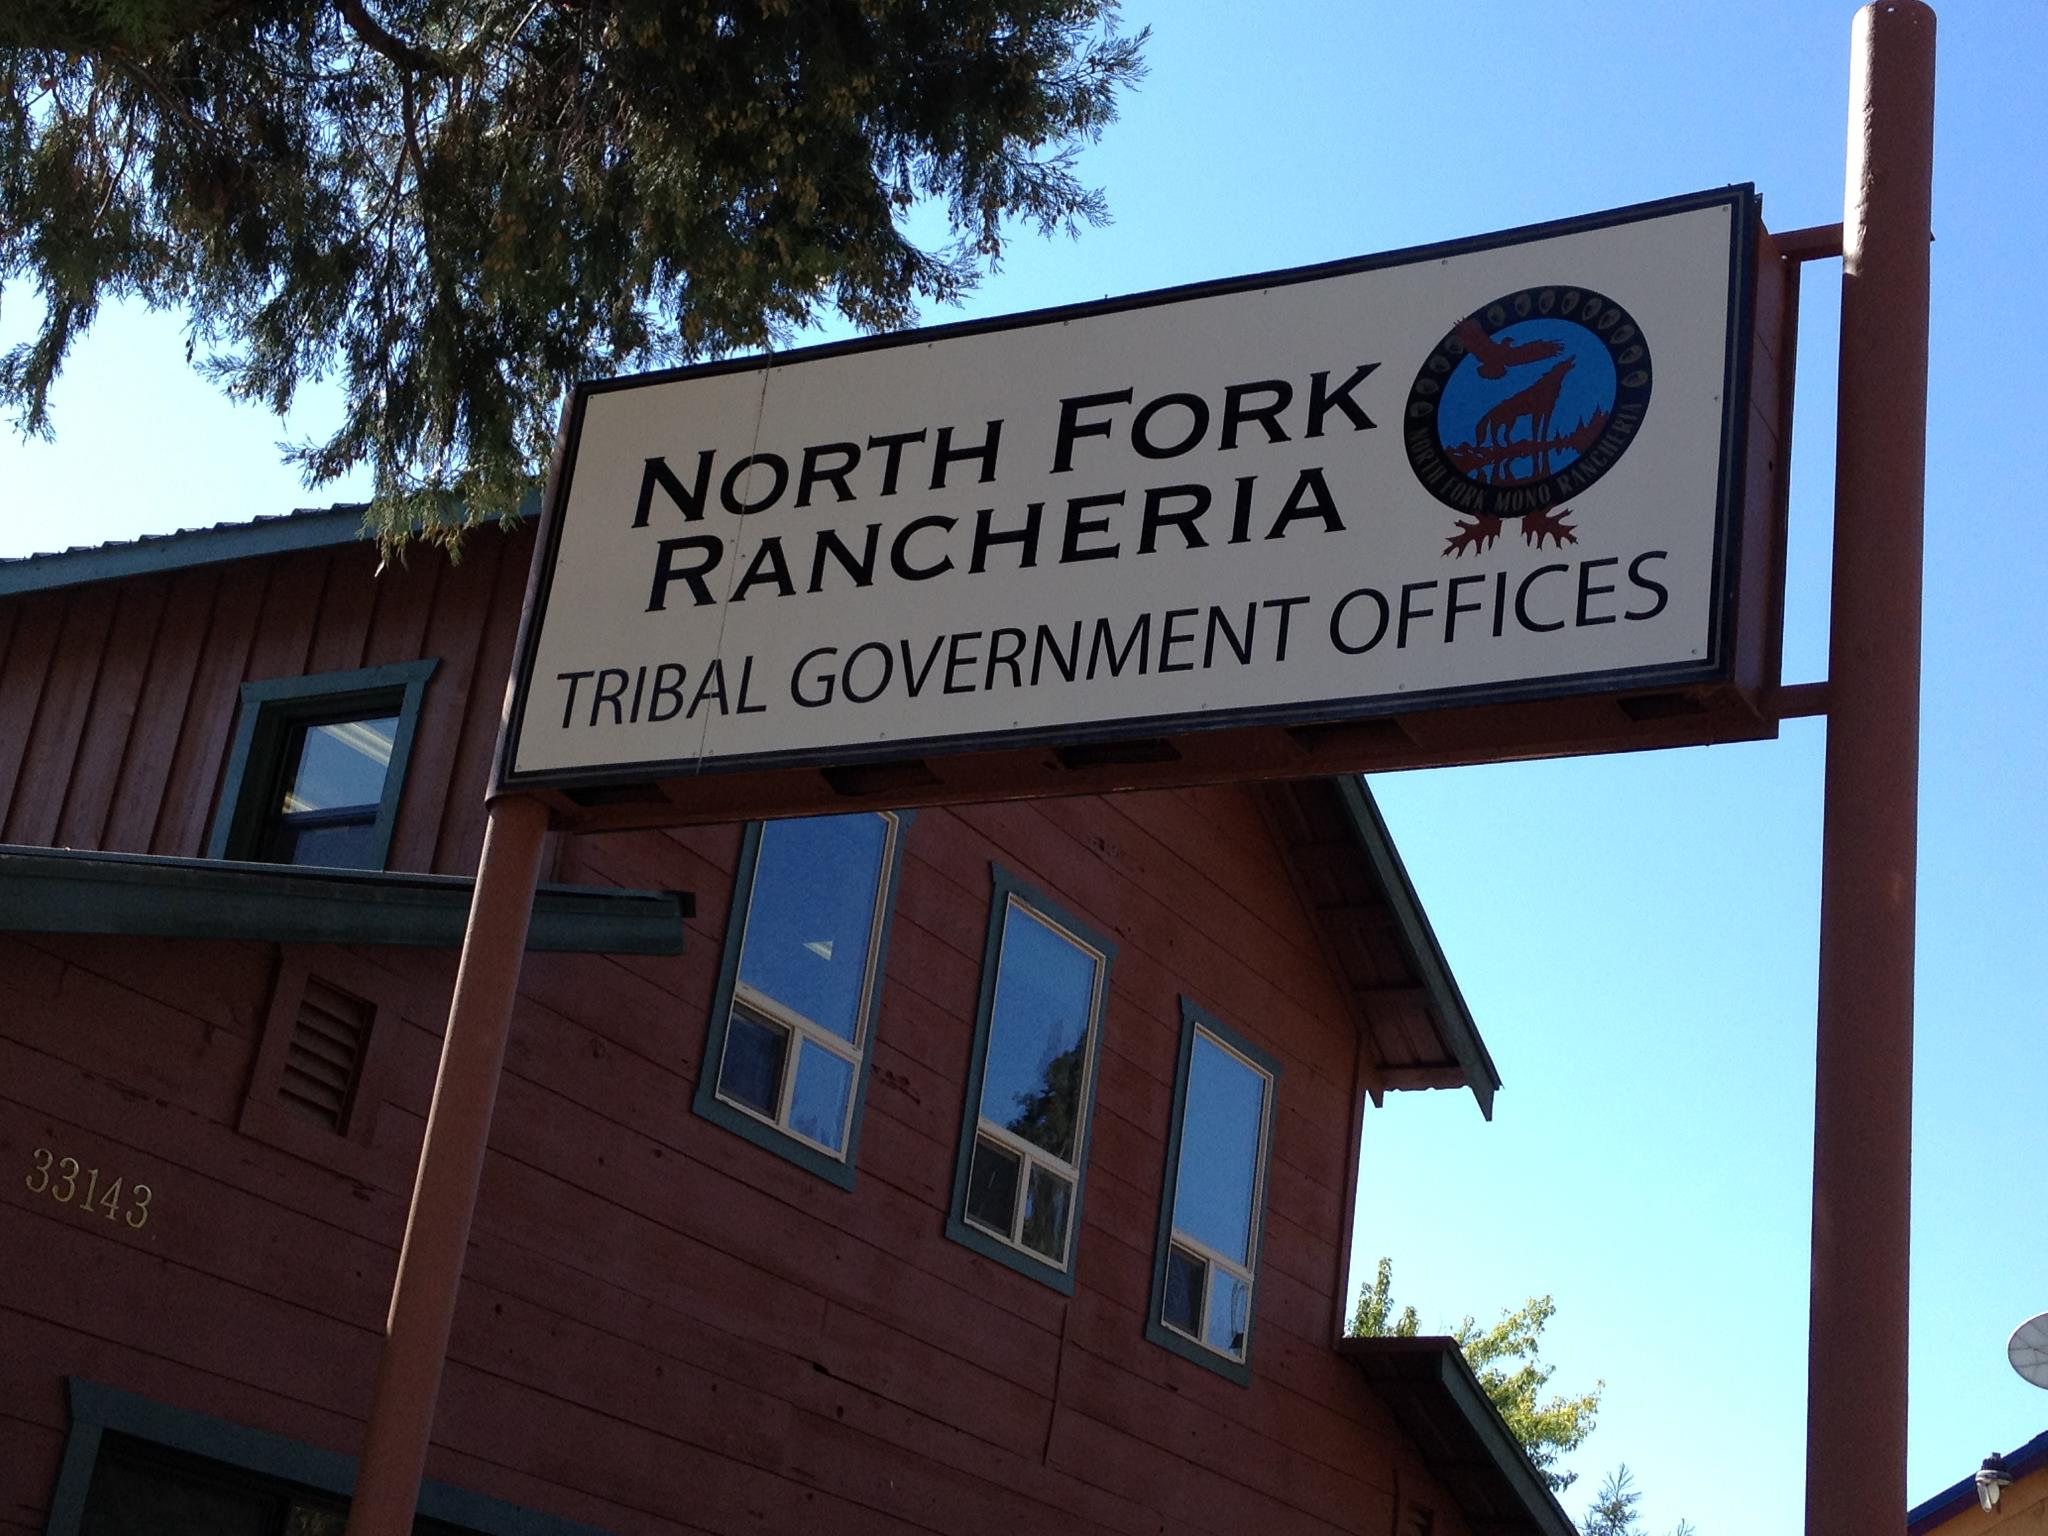 North Fork Rancheria blasts rival tribes over anti-casino efforts